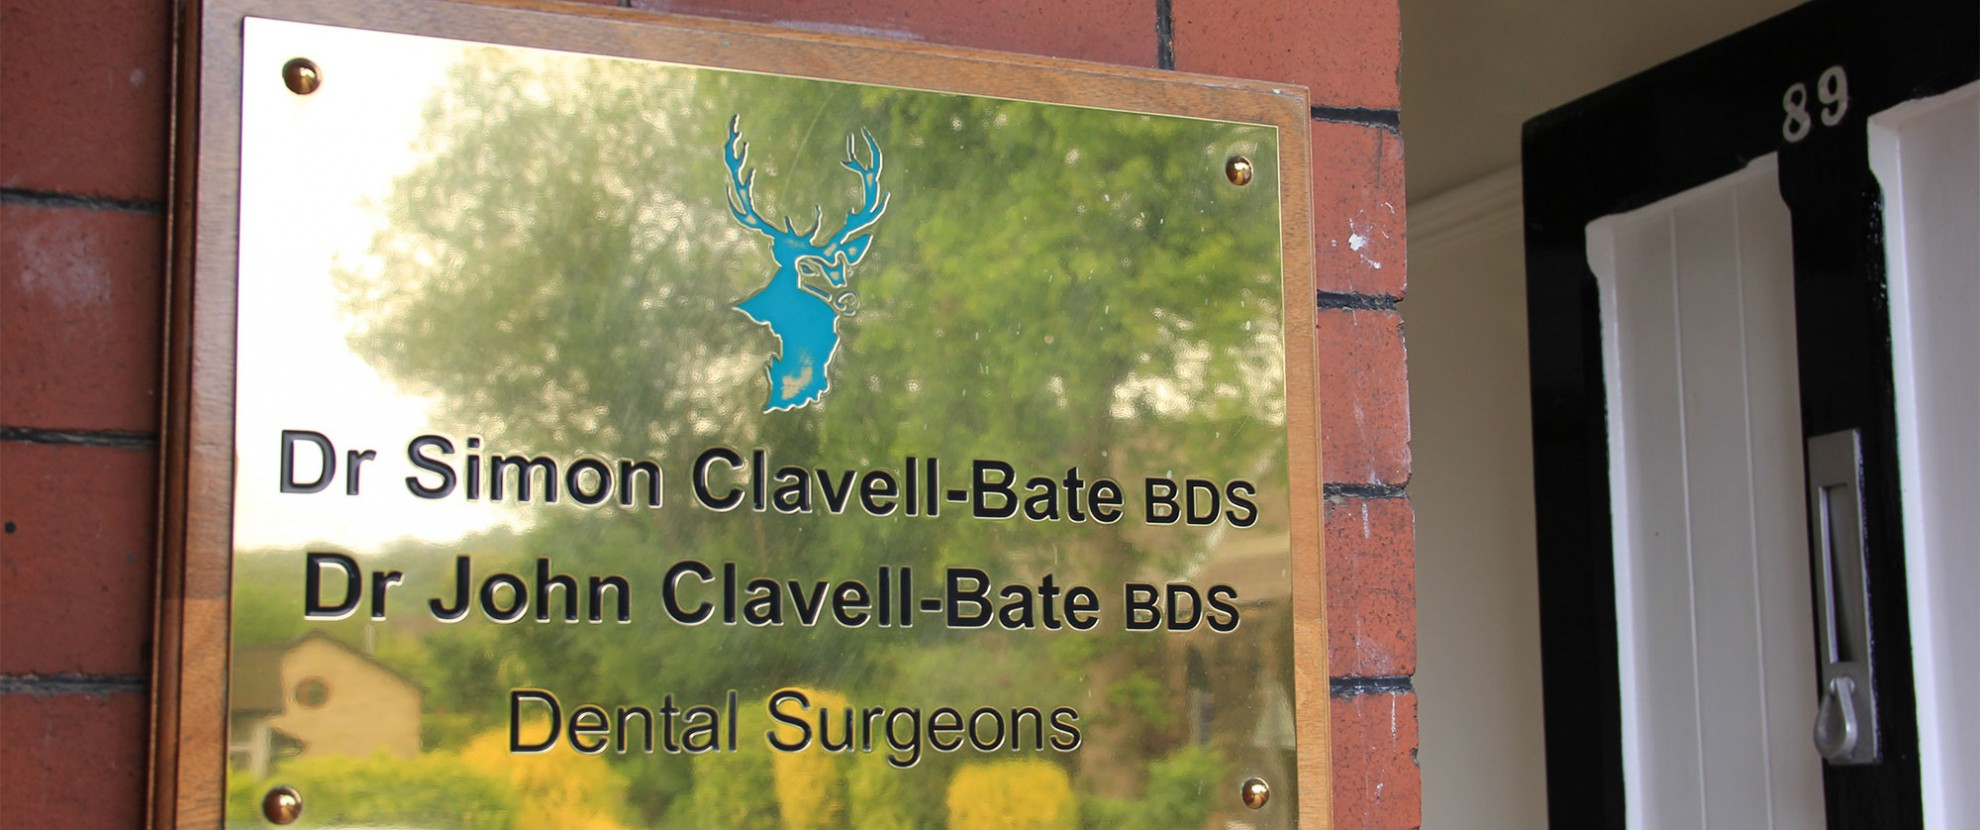 clavell bate nephew dental surgeon clavell bate nephew dental practice is now accepting new patients